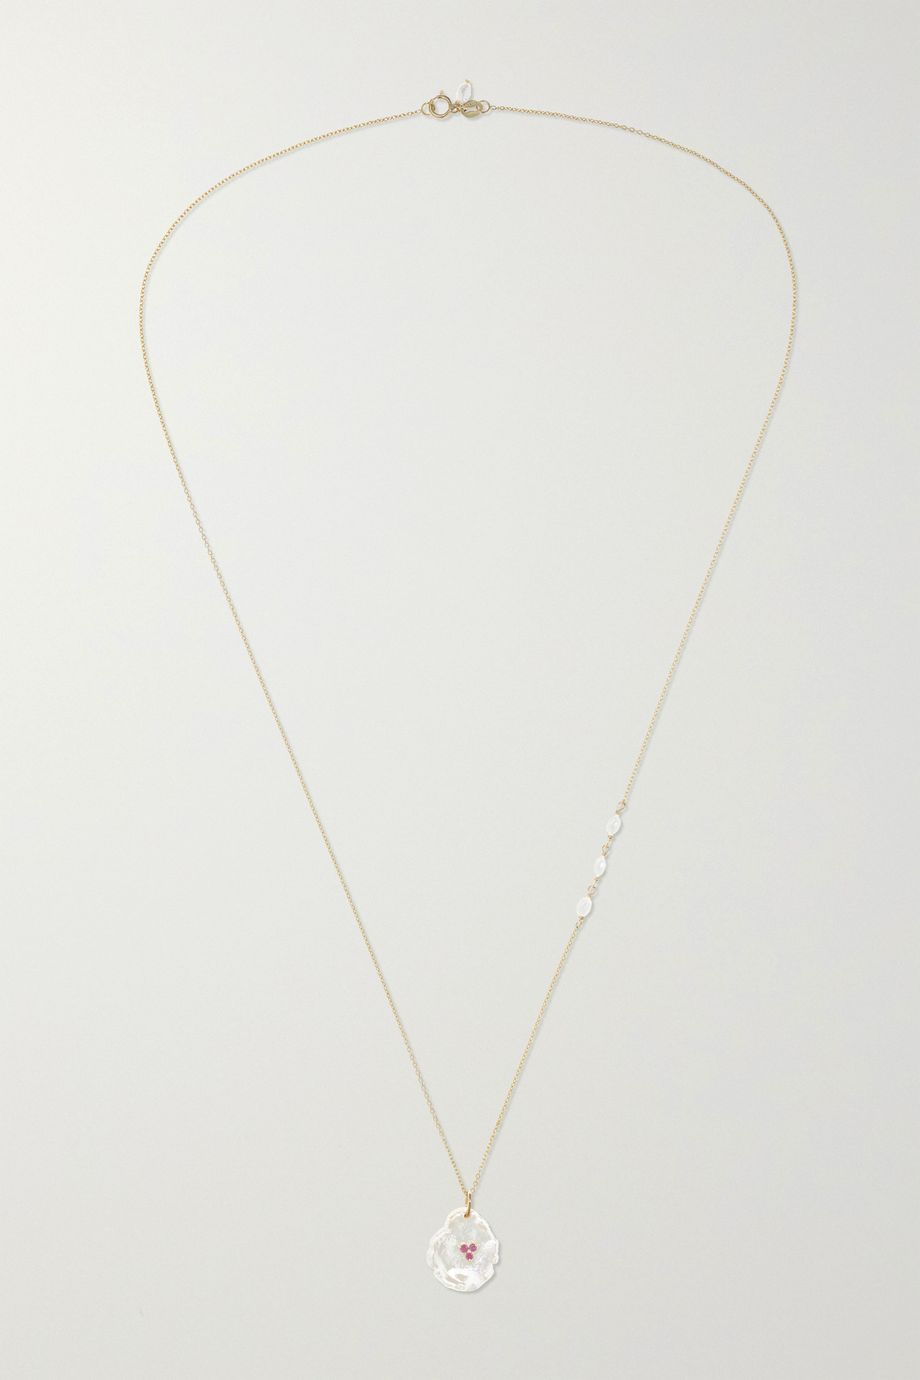 Poppy Finch 14-karat gold, pearl and ruby necklace